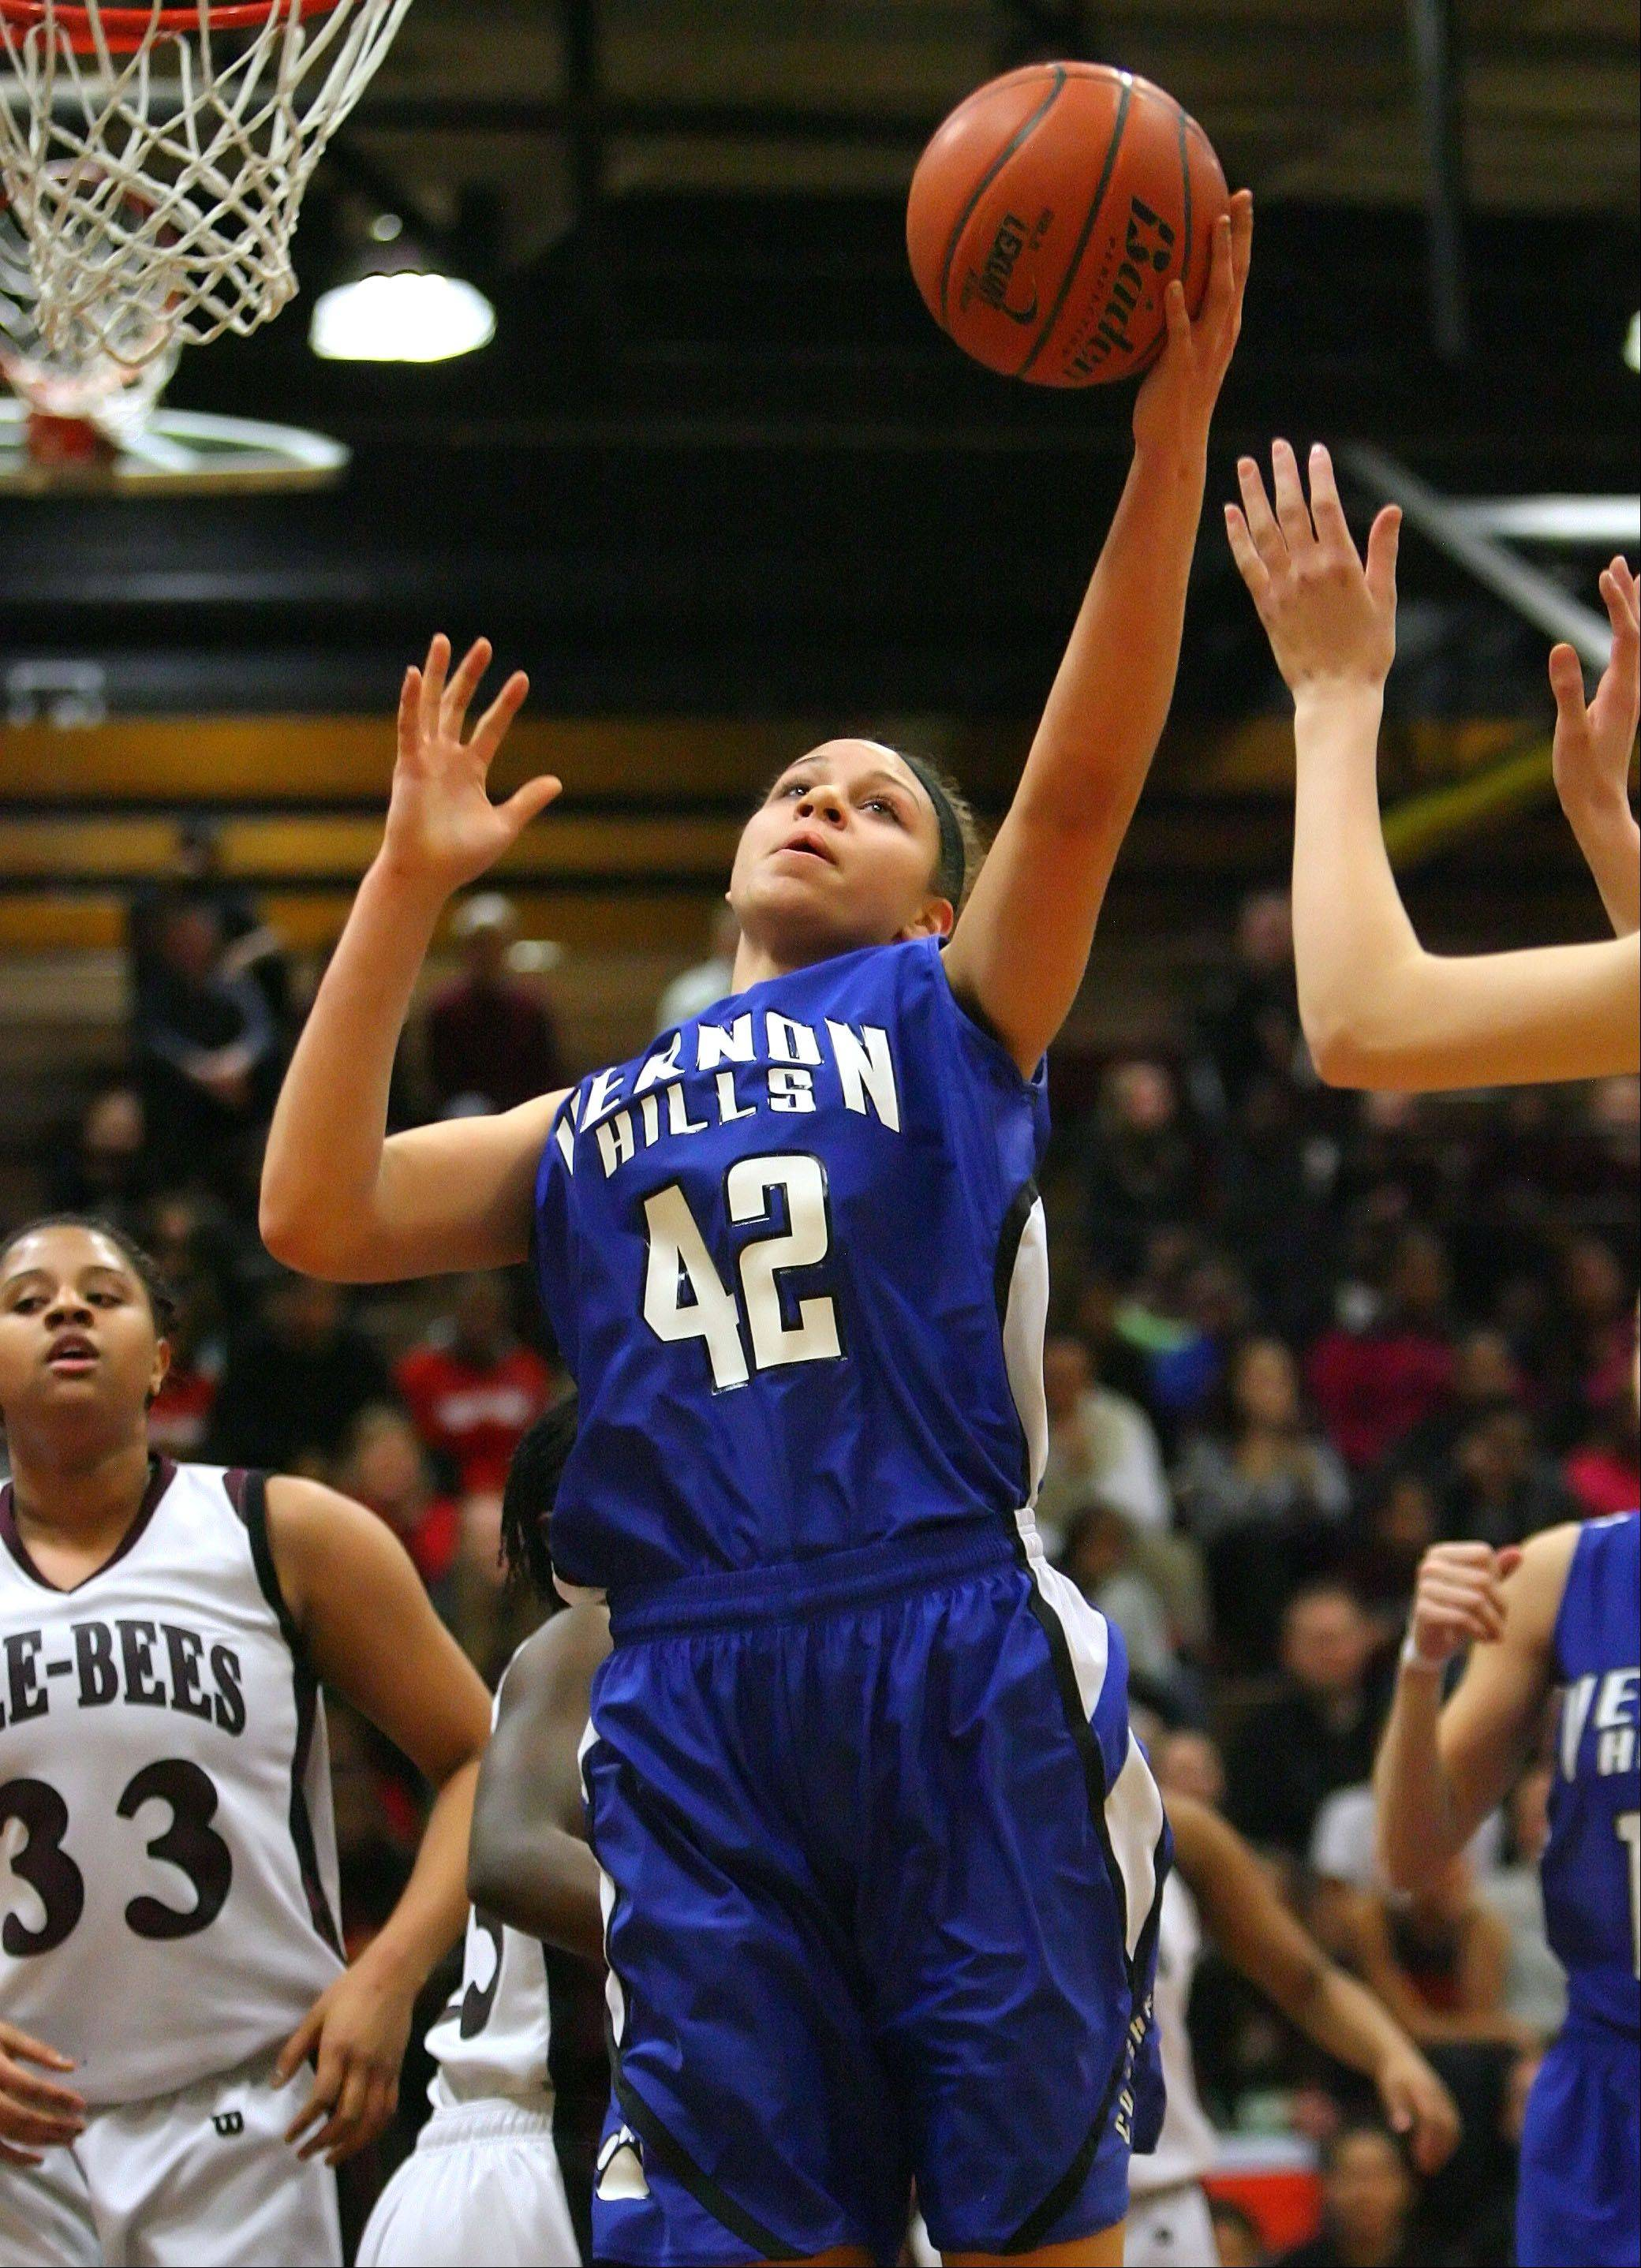 Vernon Hills' Lauren Webb pulls down a rebound during the NSC title game last season at Zion-Benton.